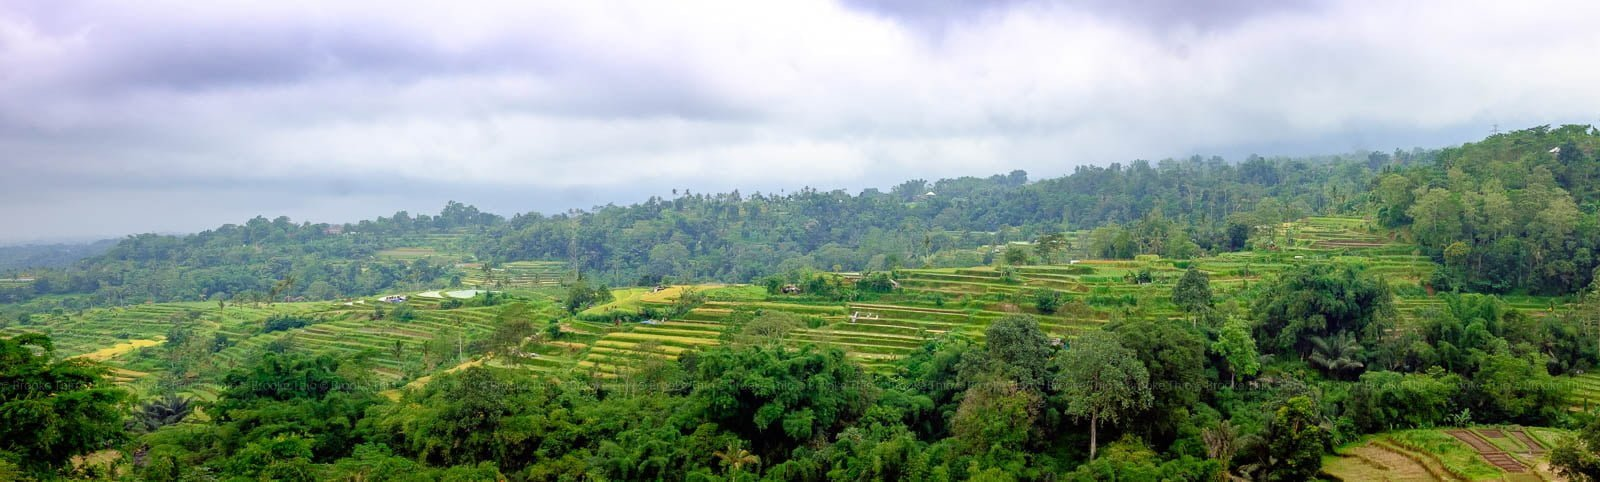 Panorama of Pacung rice terraces in Bedugul, Bali